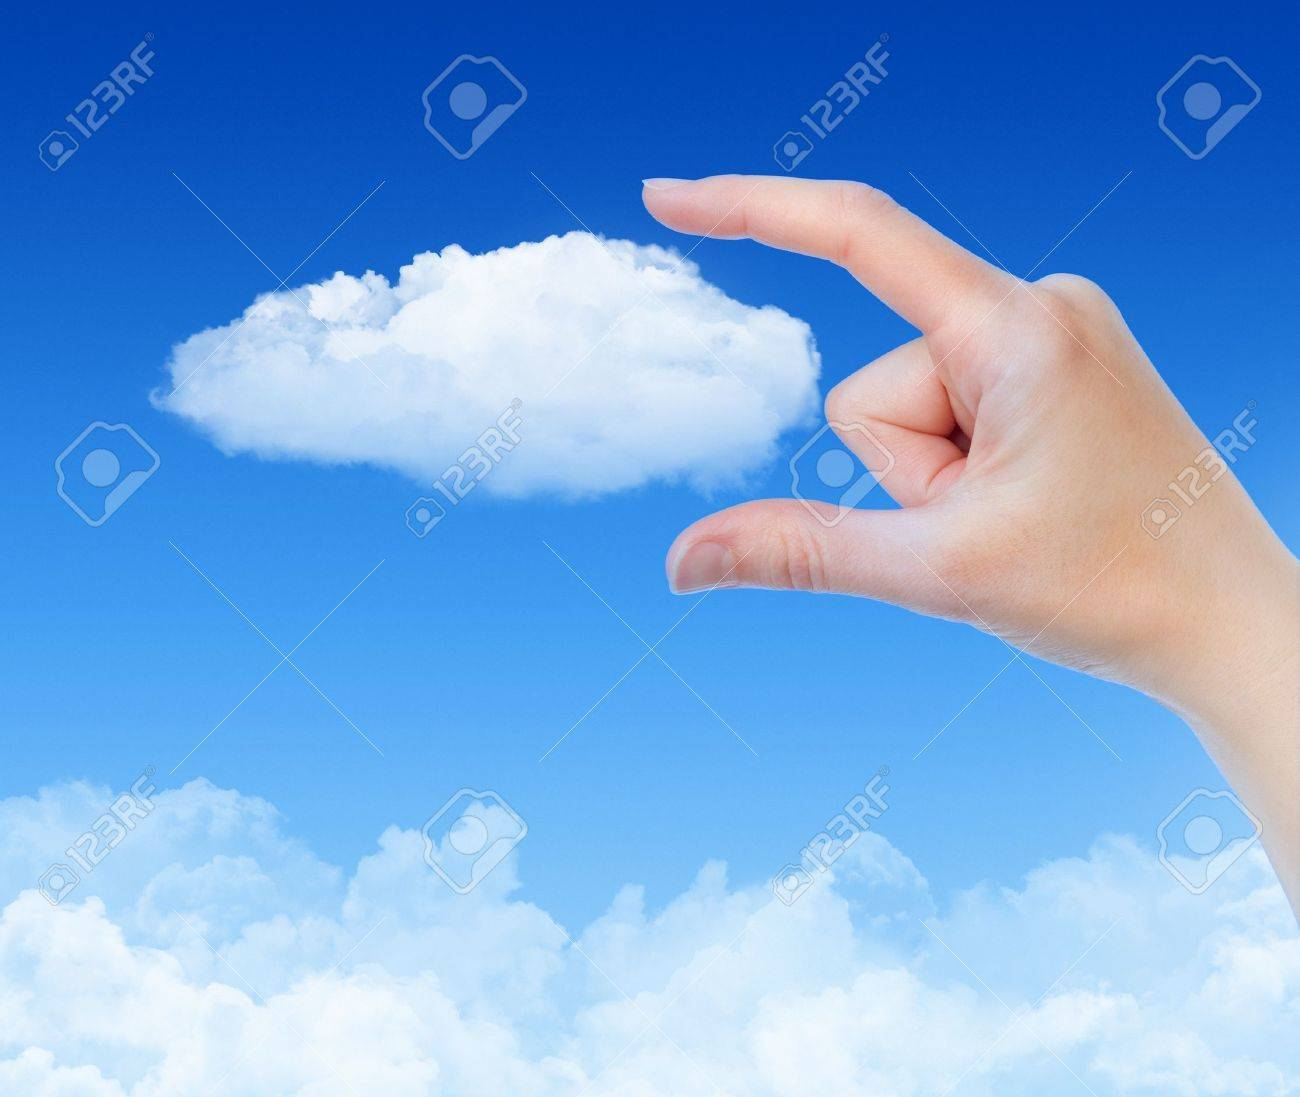 Woman hand measures the cloud against blue sky with clouds. Concept image on cloud computing and eco theme. Stock Photo - 11978135